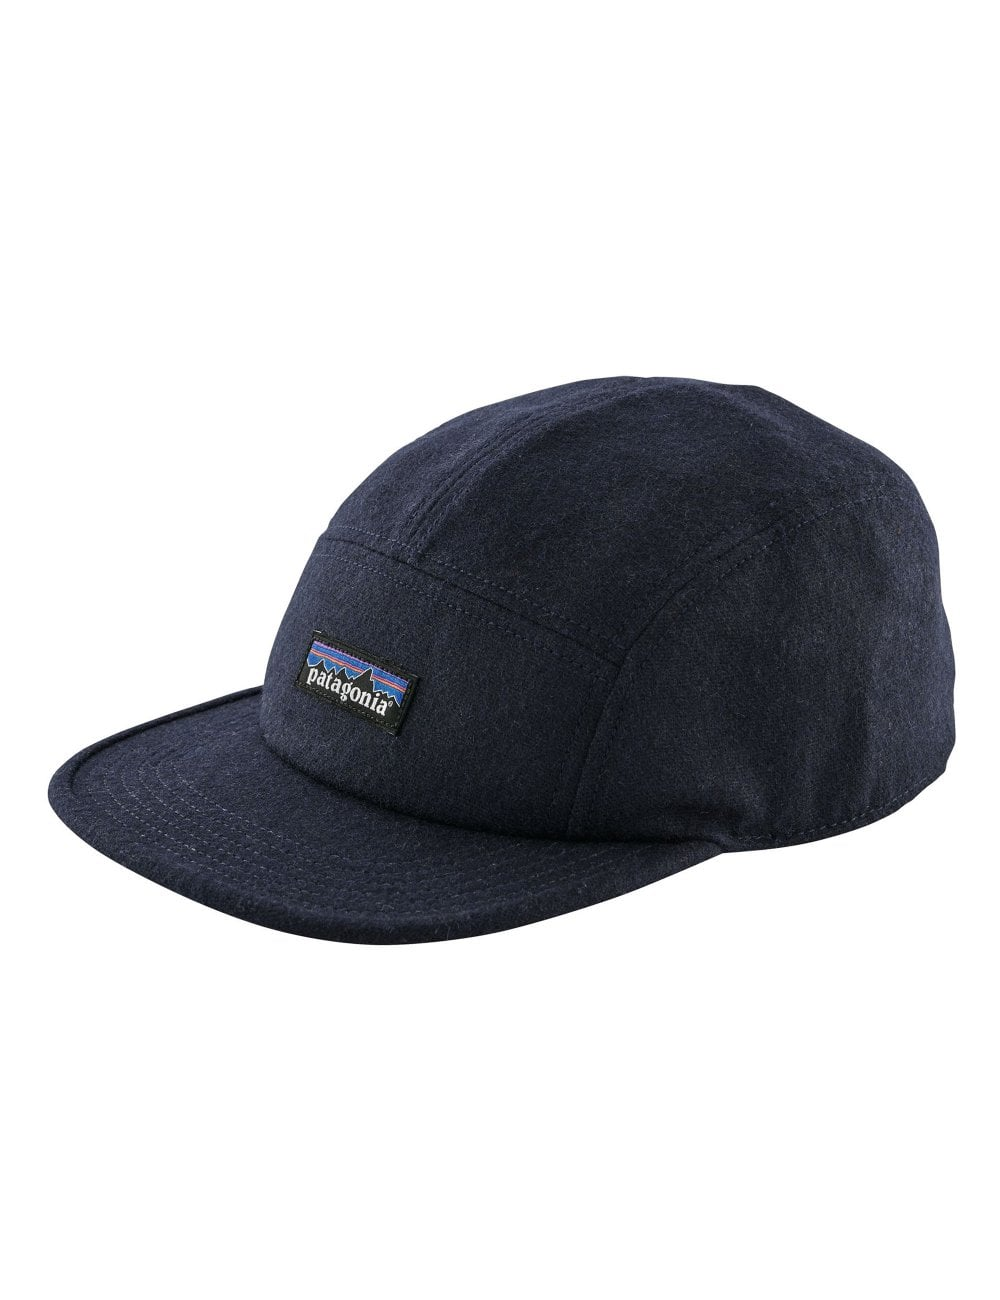 Patagonia Recycled Wool 5 Panel Cap - Classic Navy - Accessories ... 8c559cd74f2